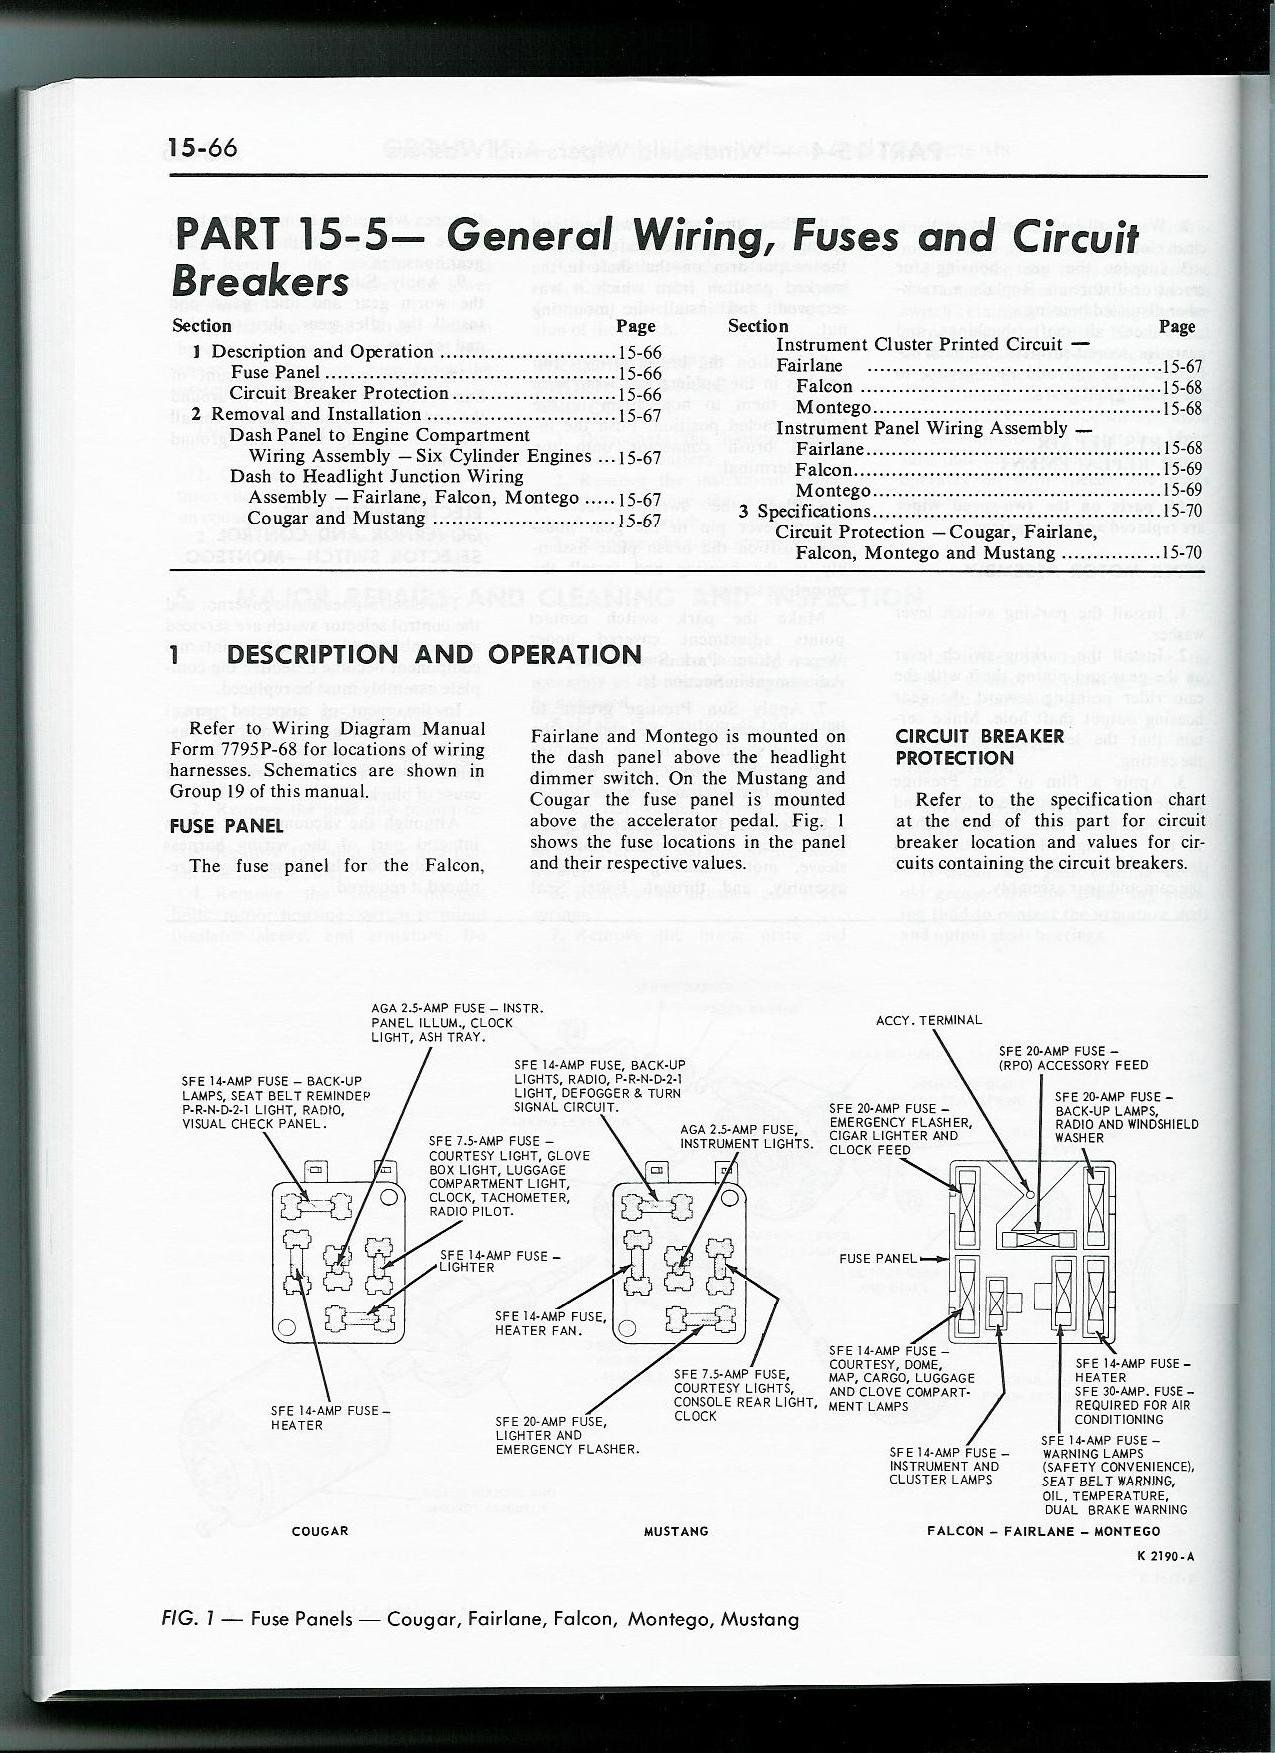 1965 mustang fuse panel fuse box diagram ford mustang forum click image for larger version 68 fuse box jpg views 66753 size